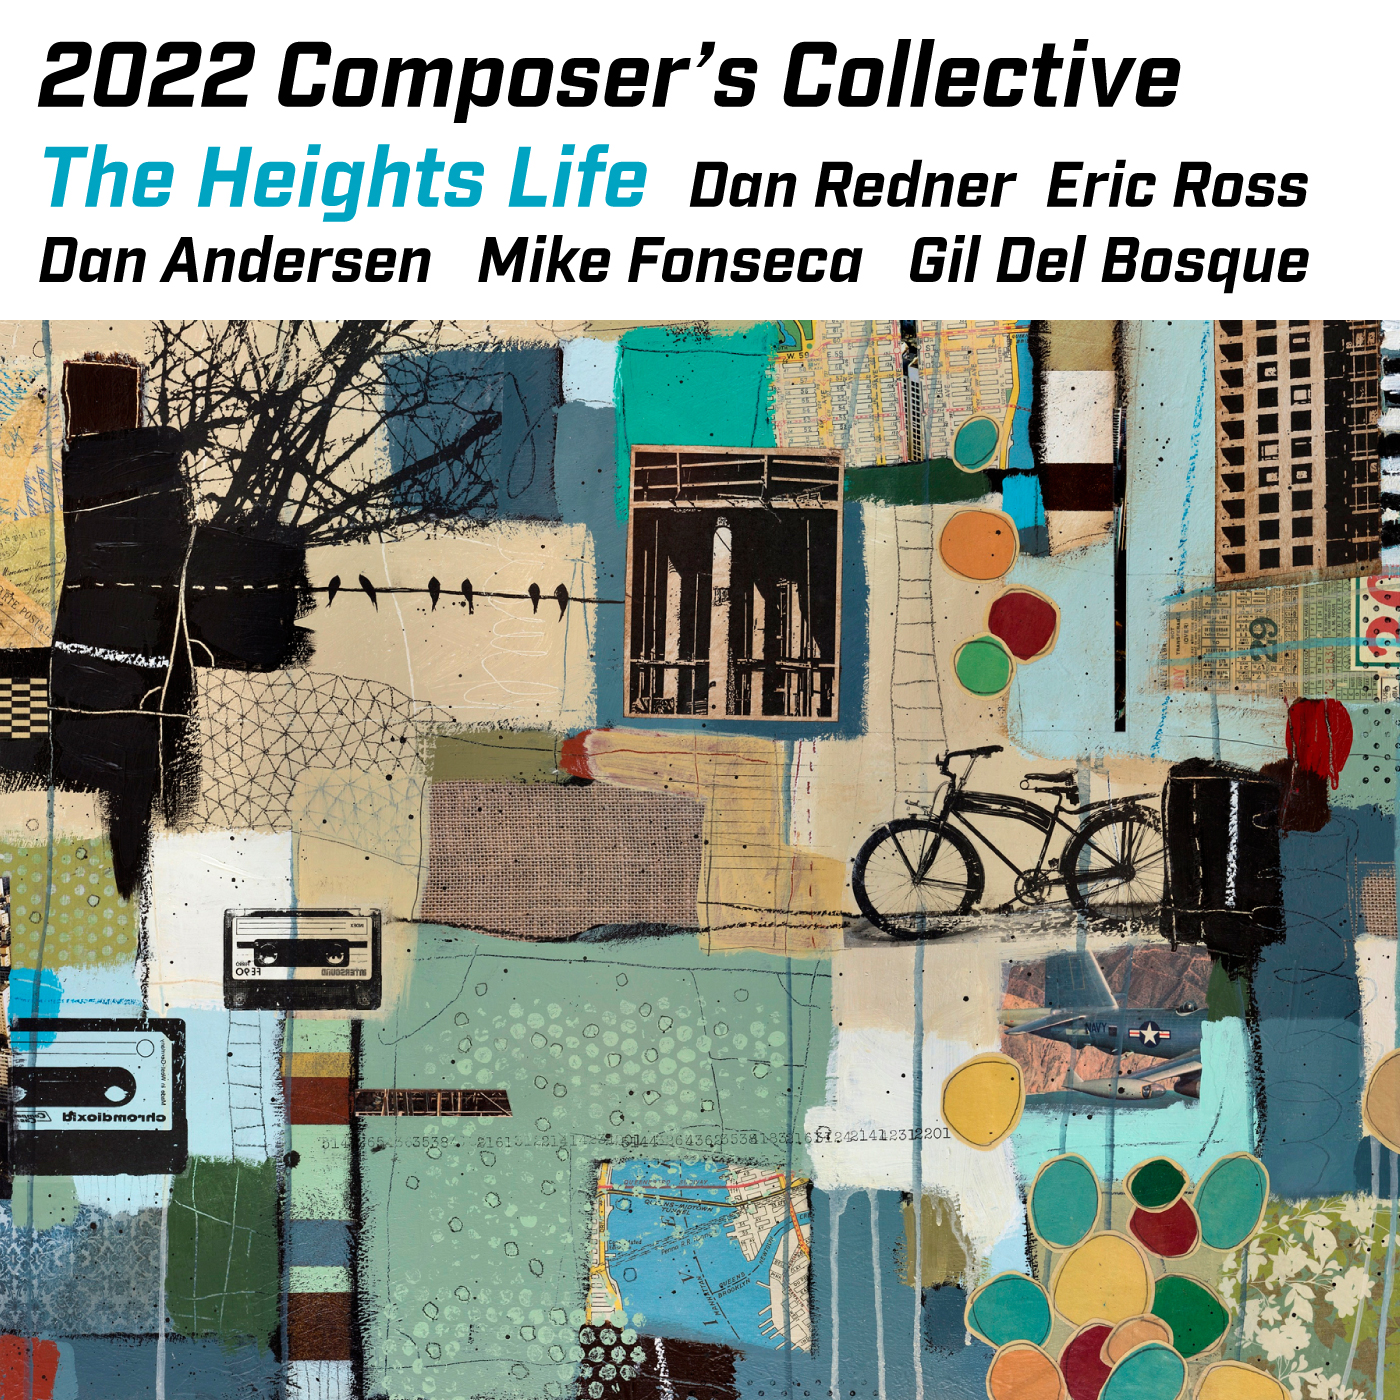 Album Art for 2022 Composer's Collective Upcoming Release